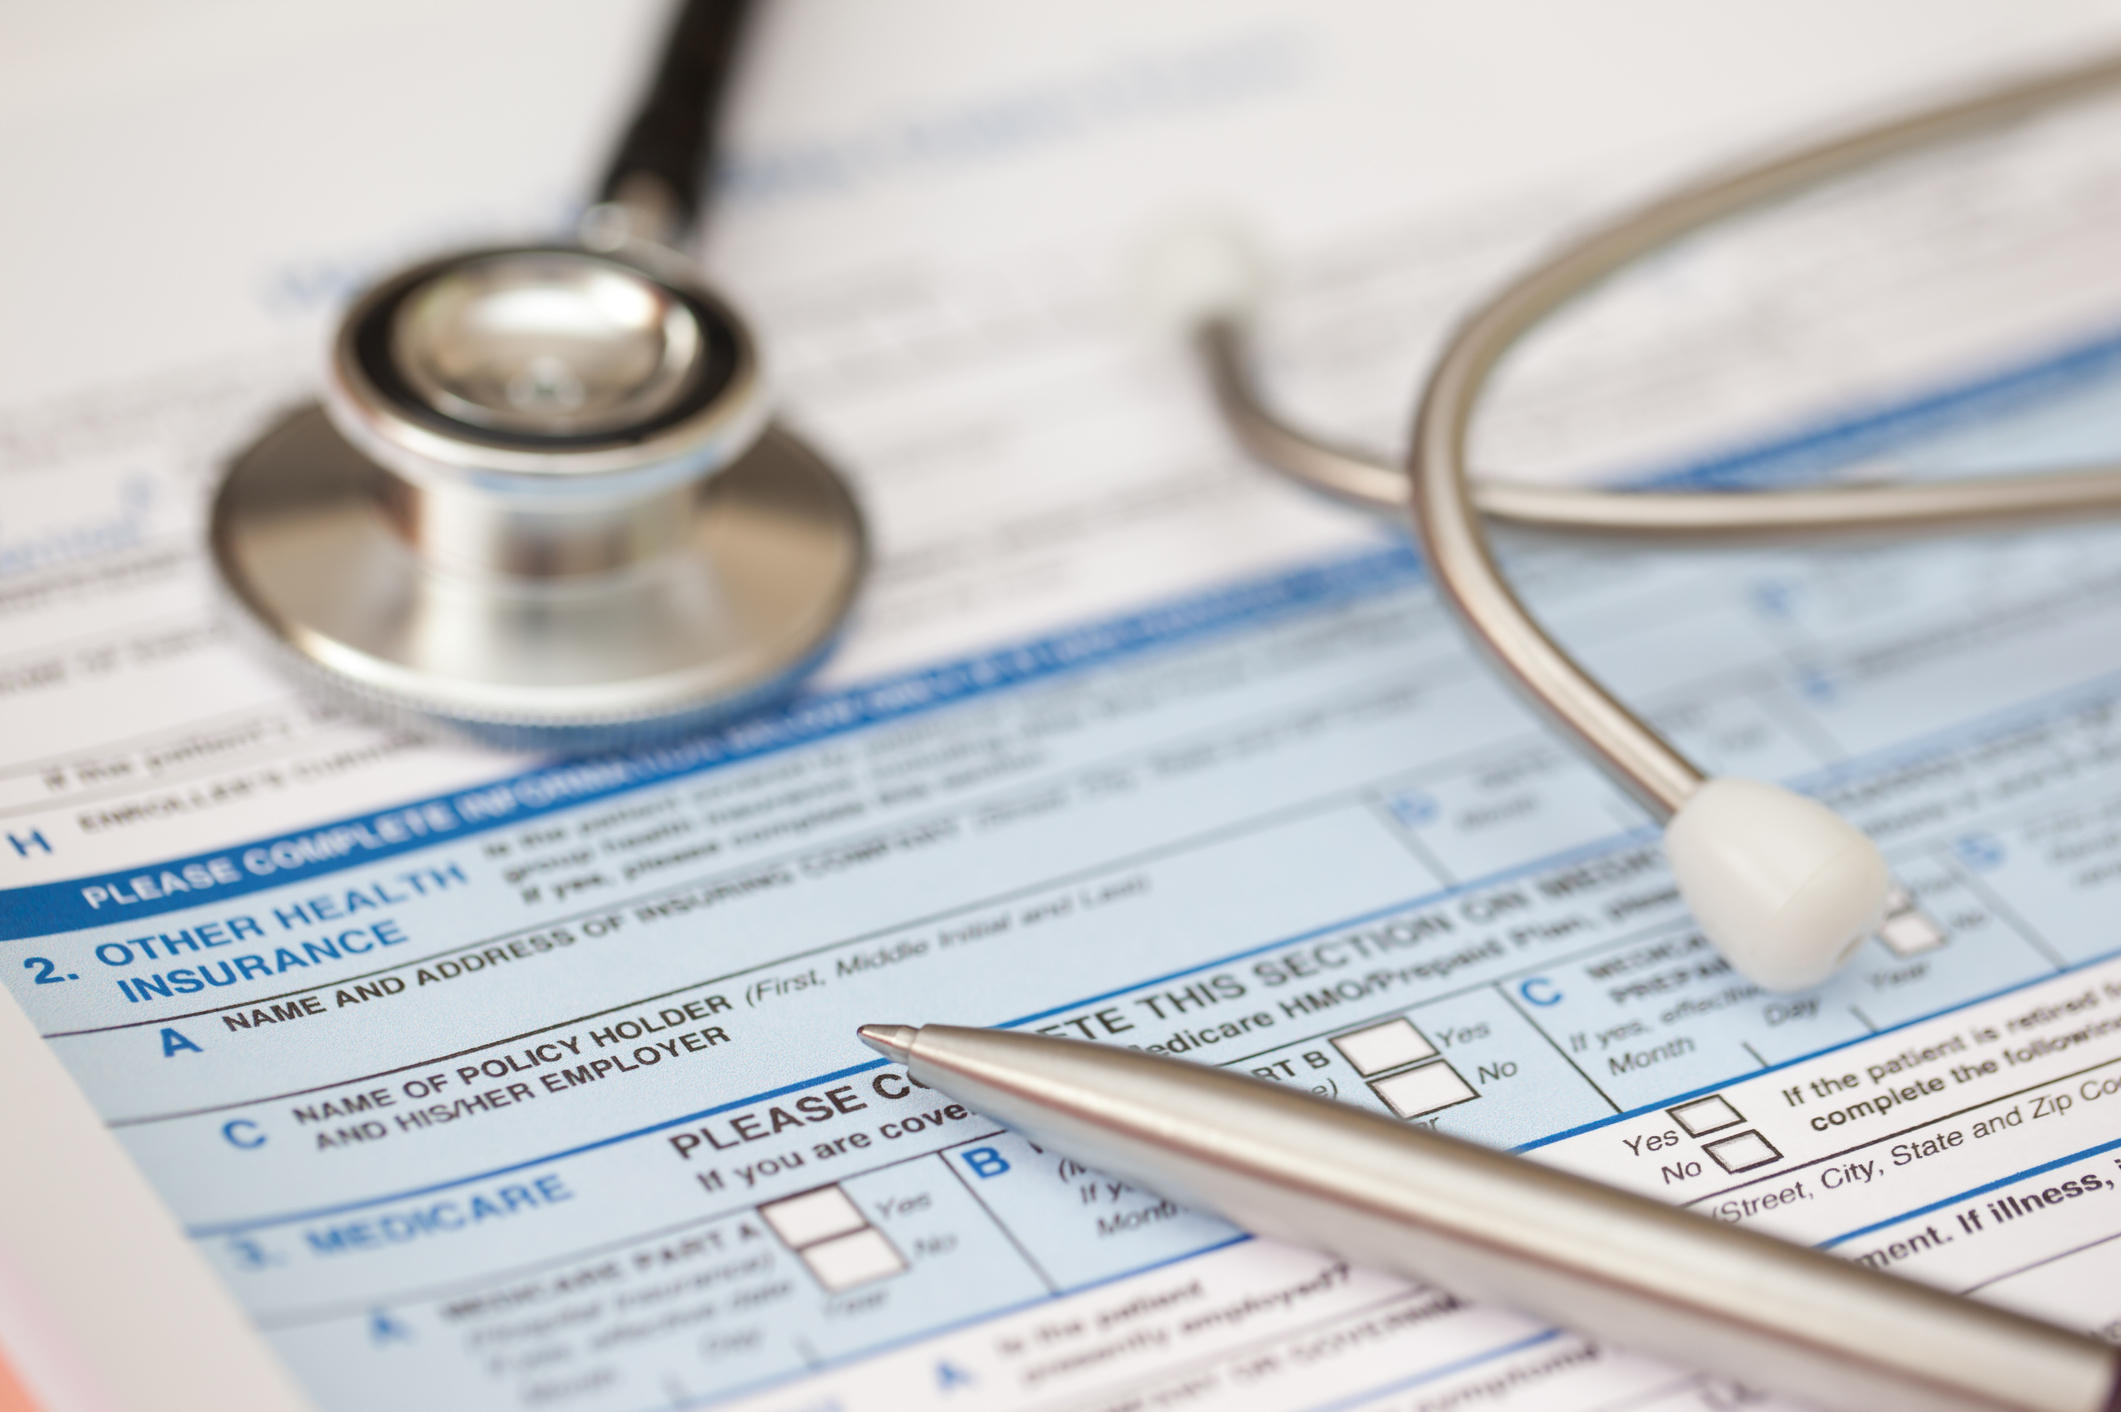 Missouri Firm With Silicon Valley Ties Faces Medicare Billing